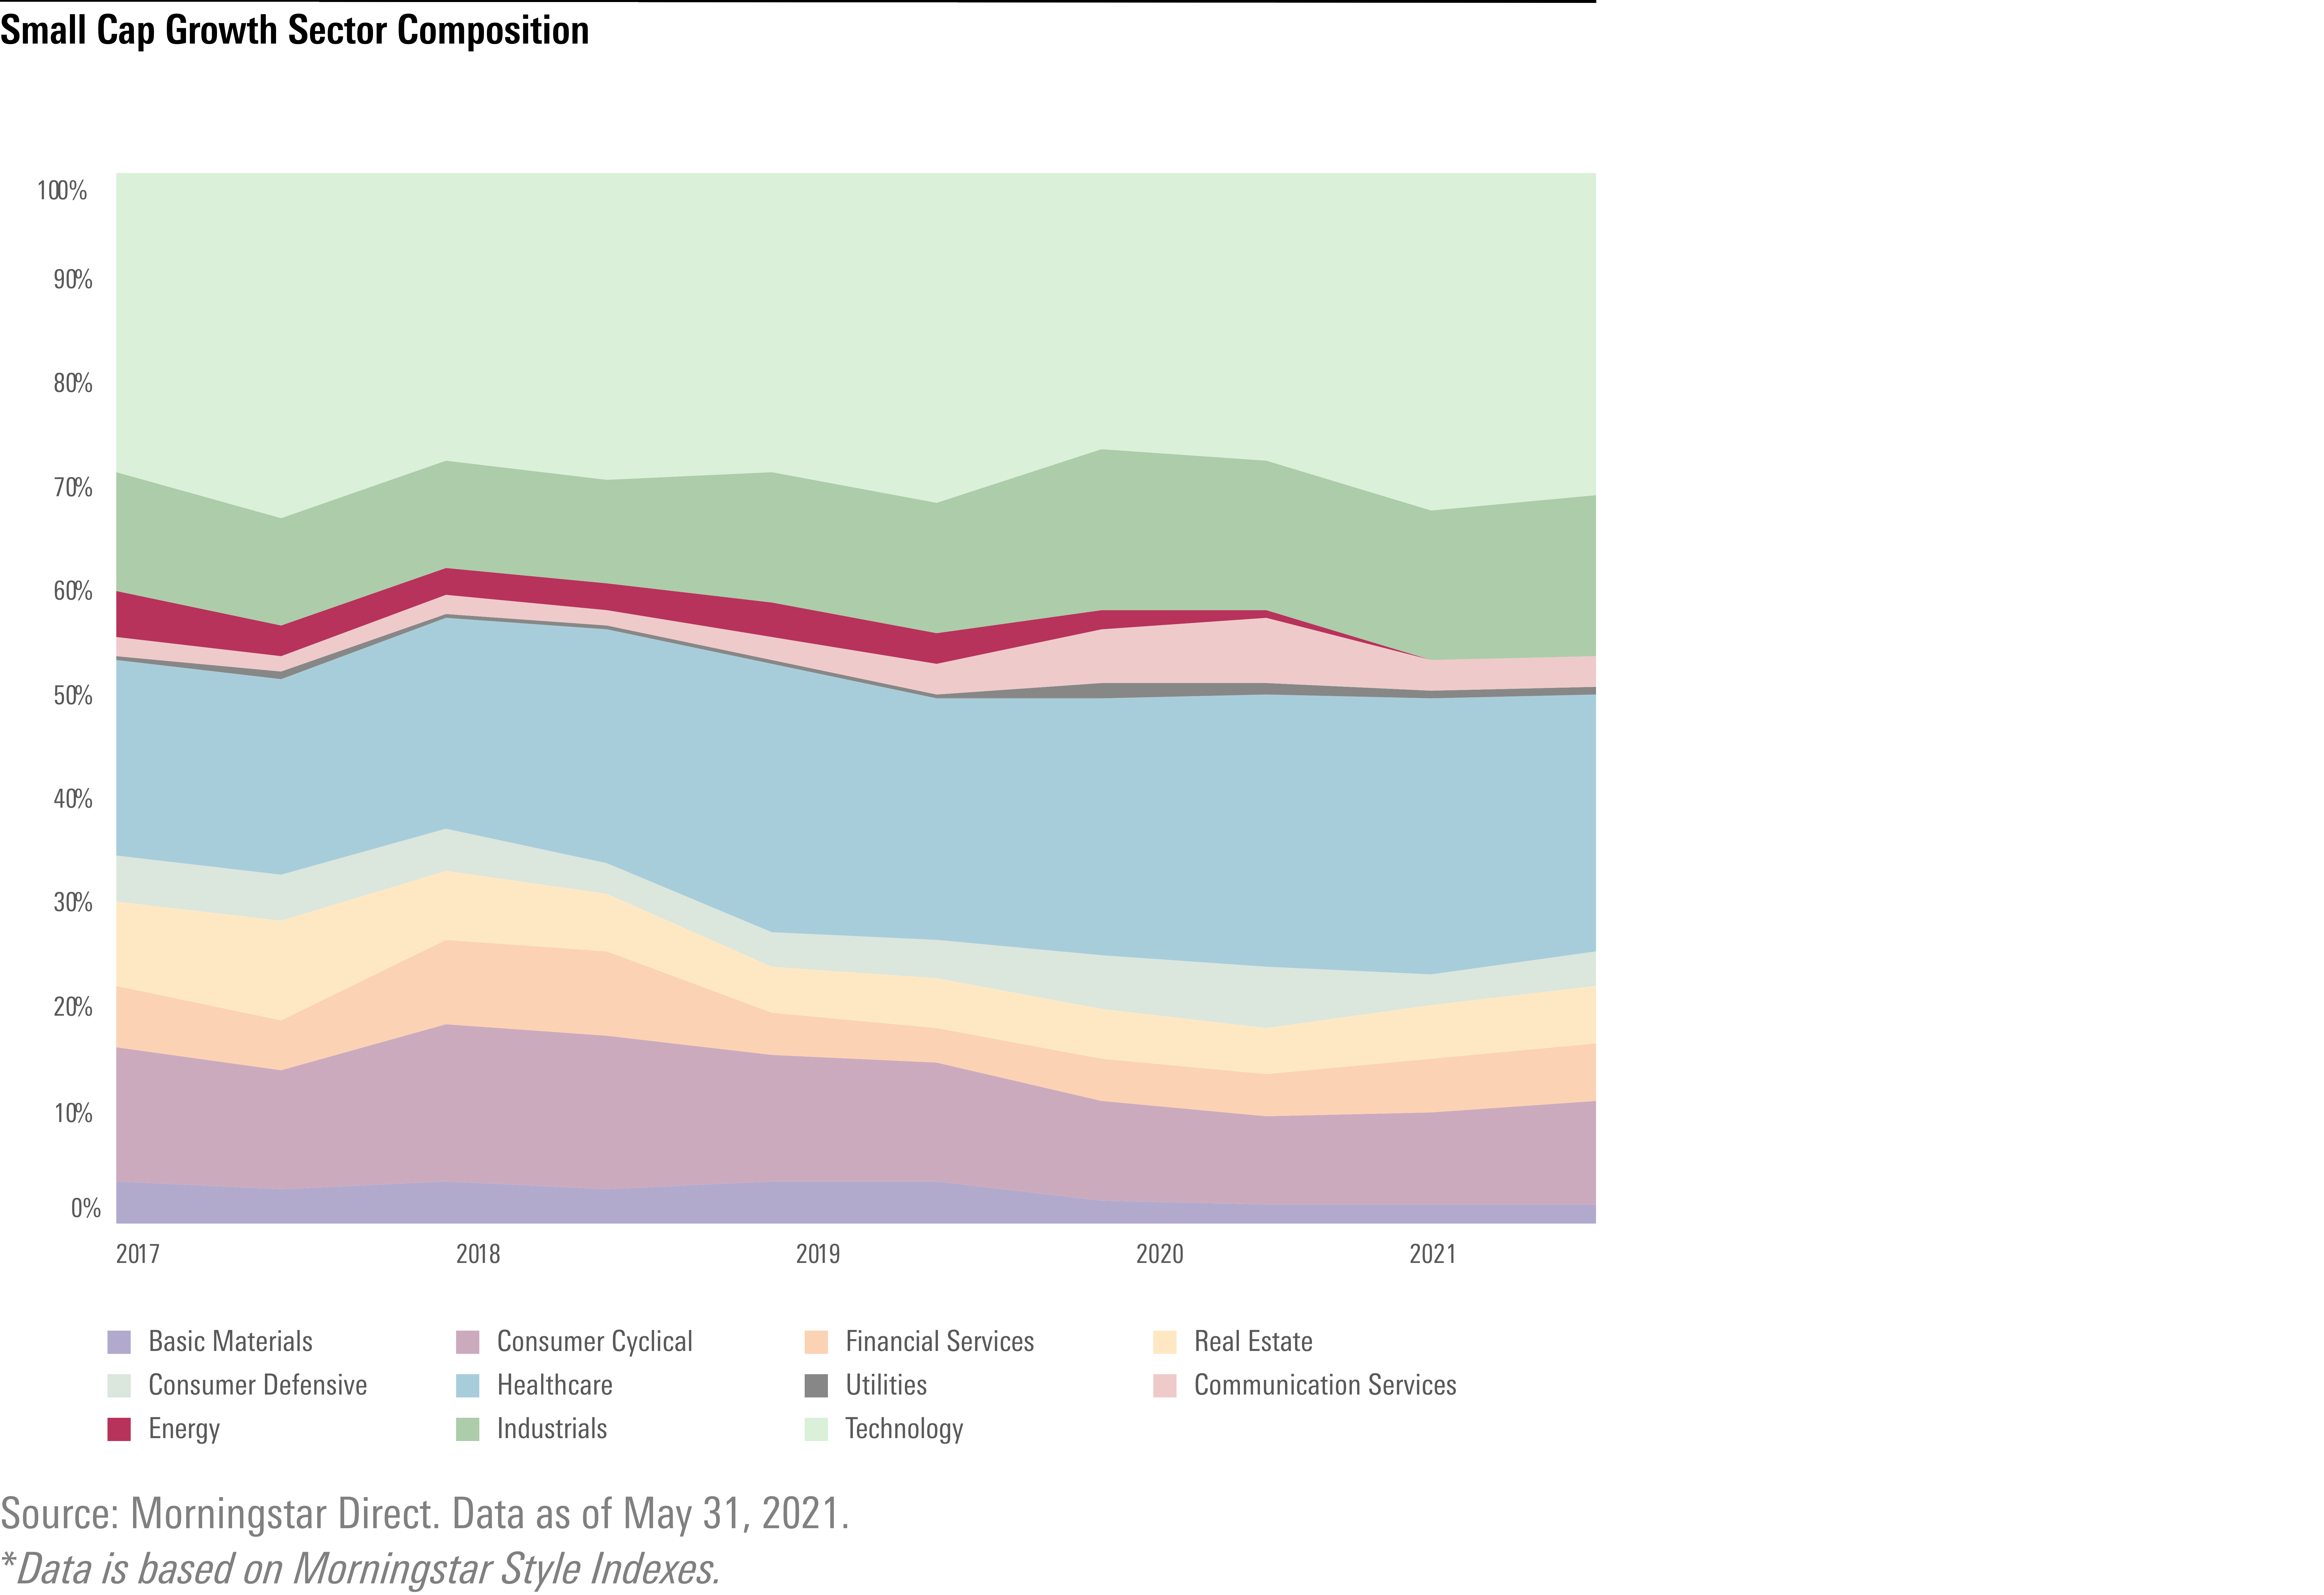 Small cap growth sector composition